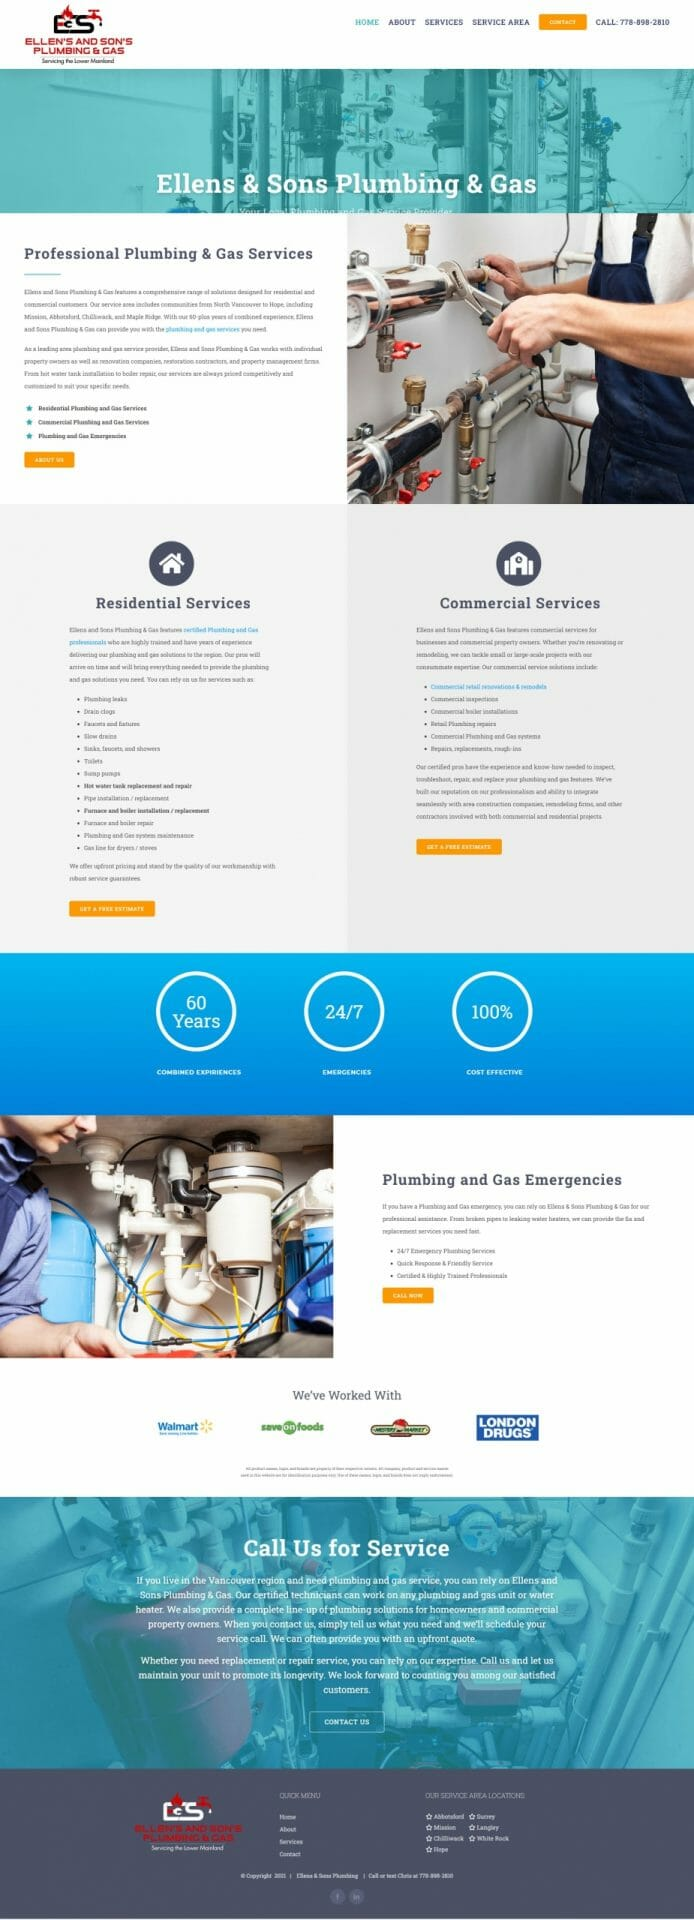 Home page layout for Ellens Sons Plumbing and Gas